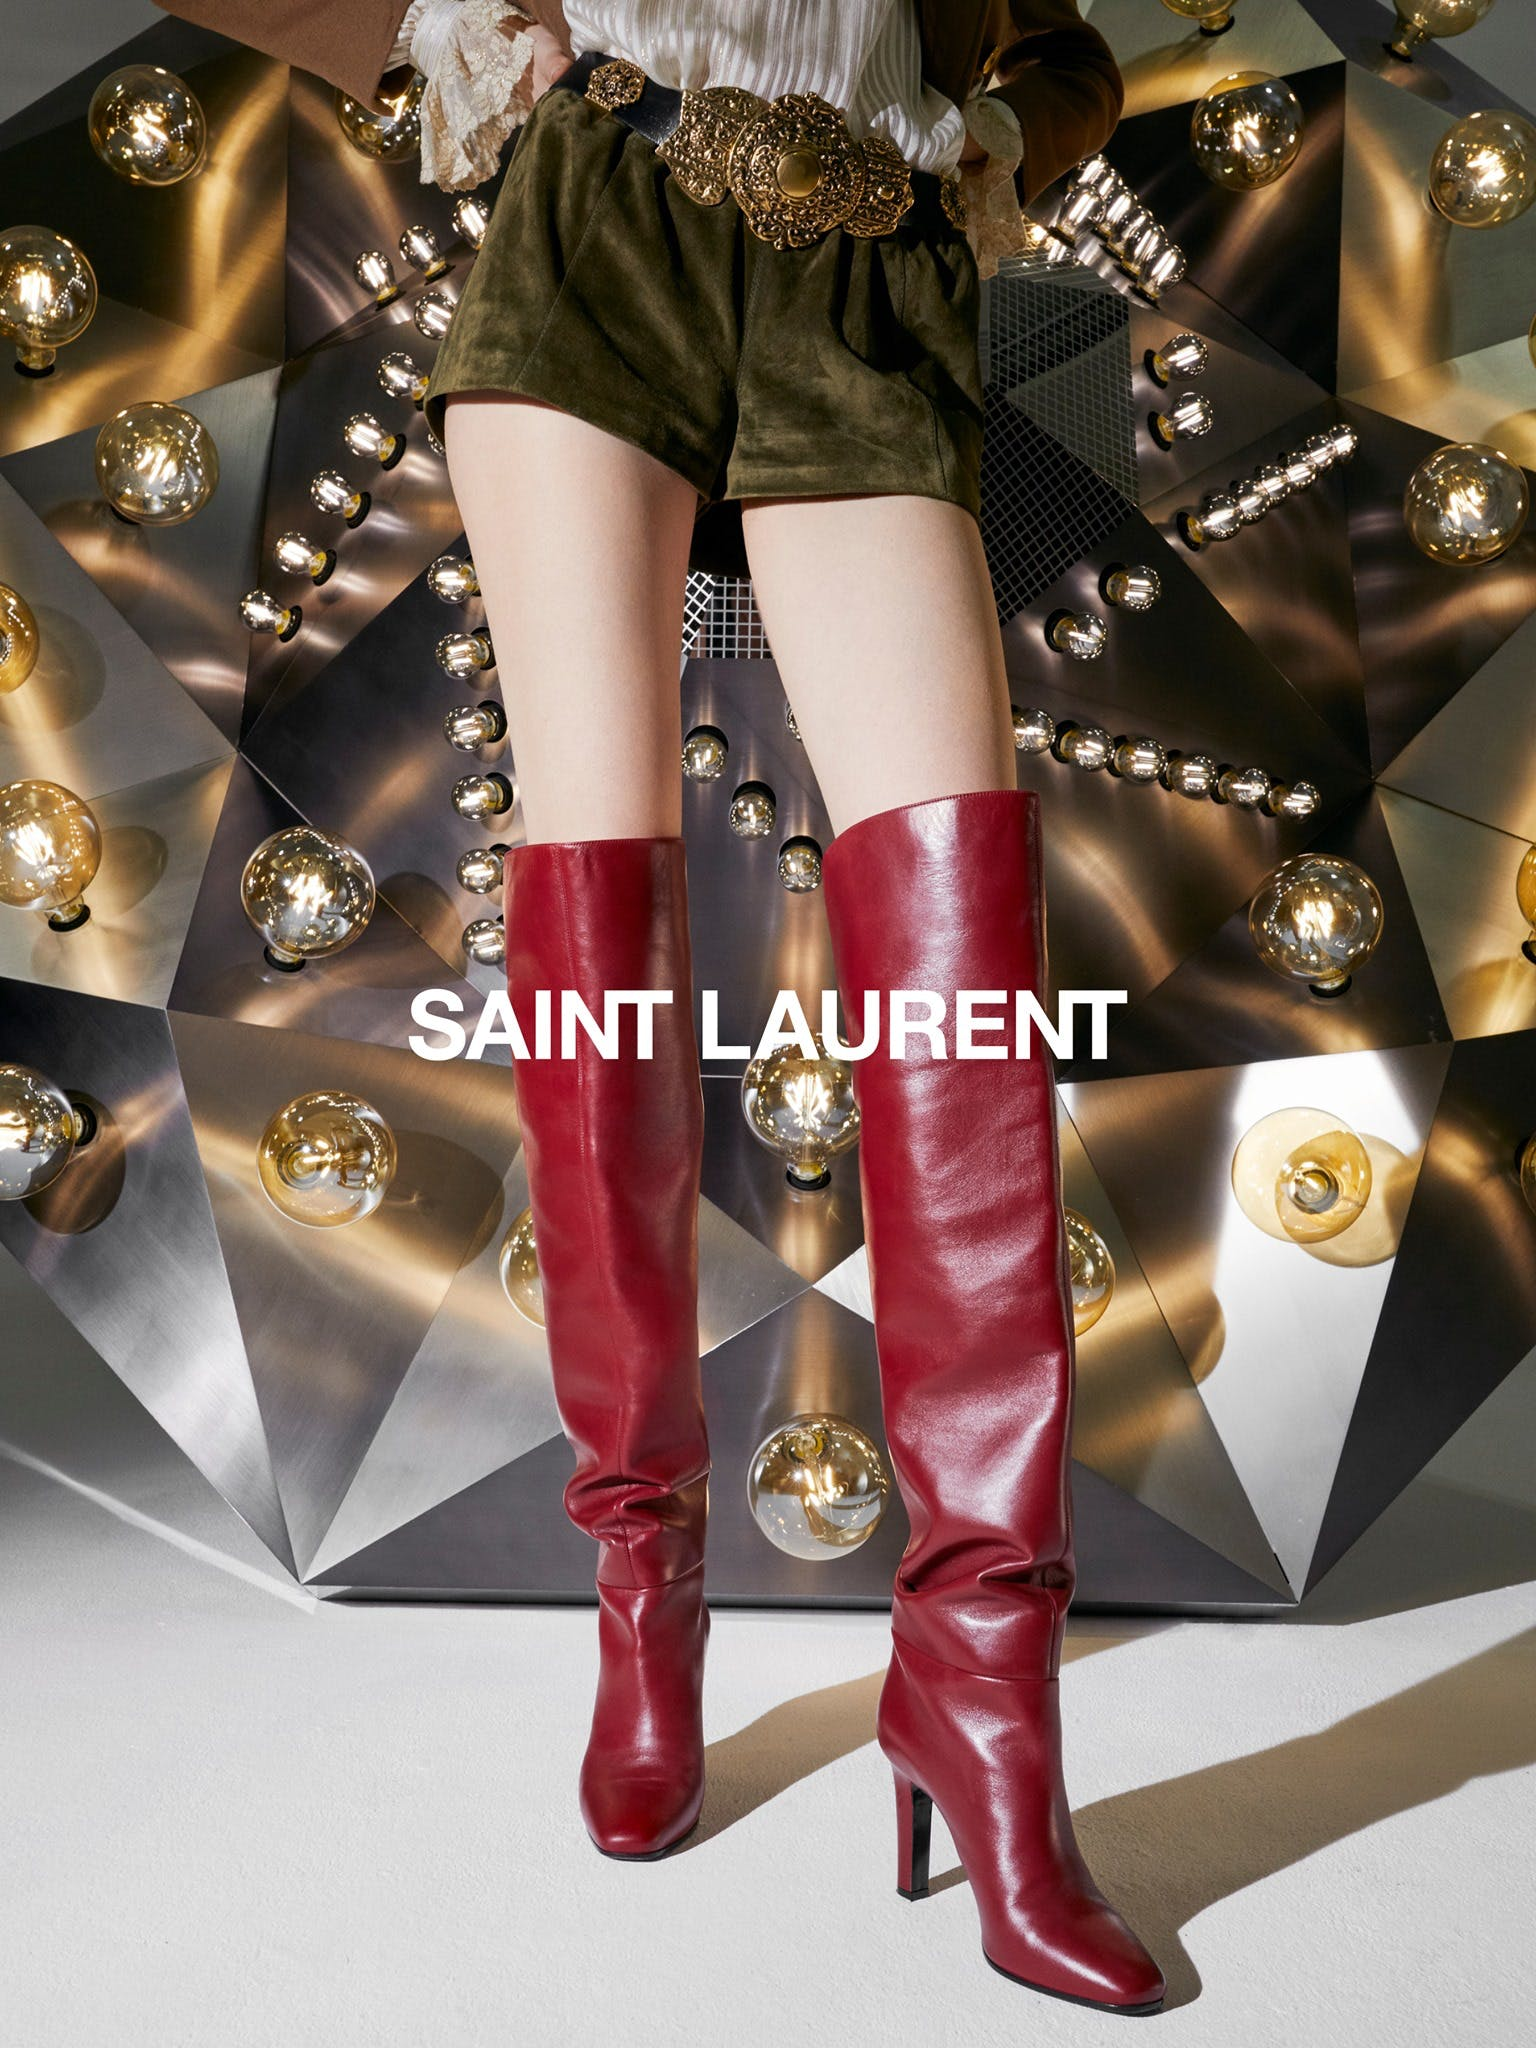 SAINT LAURENT: #YSL33 FALL 2020 AD CAMPAIGN